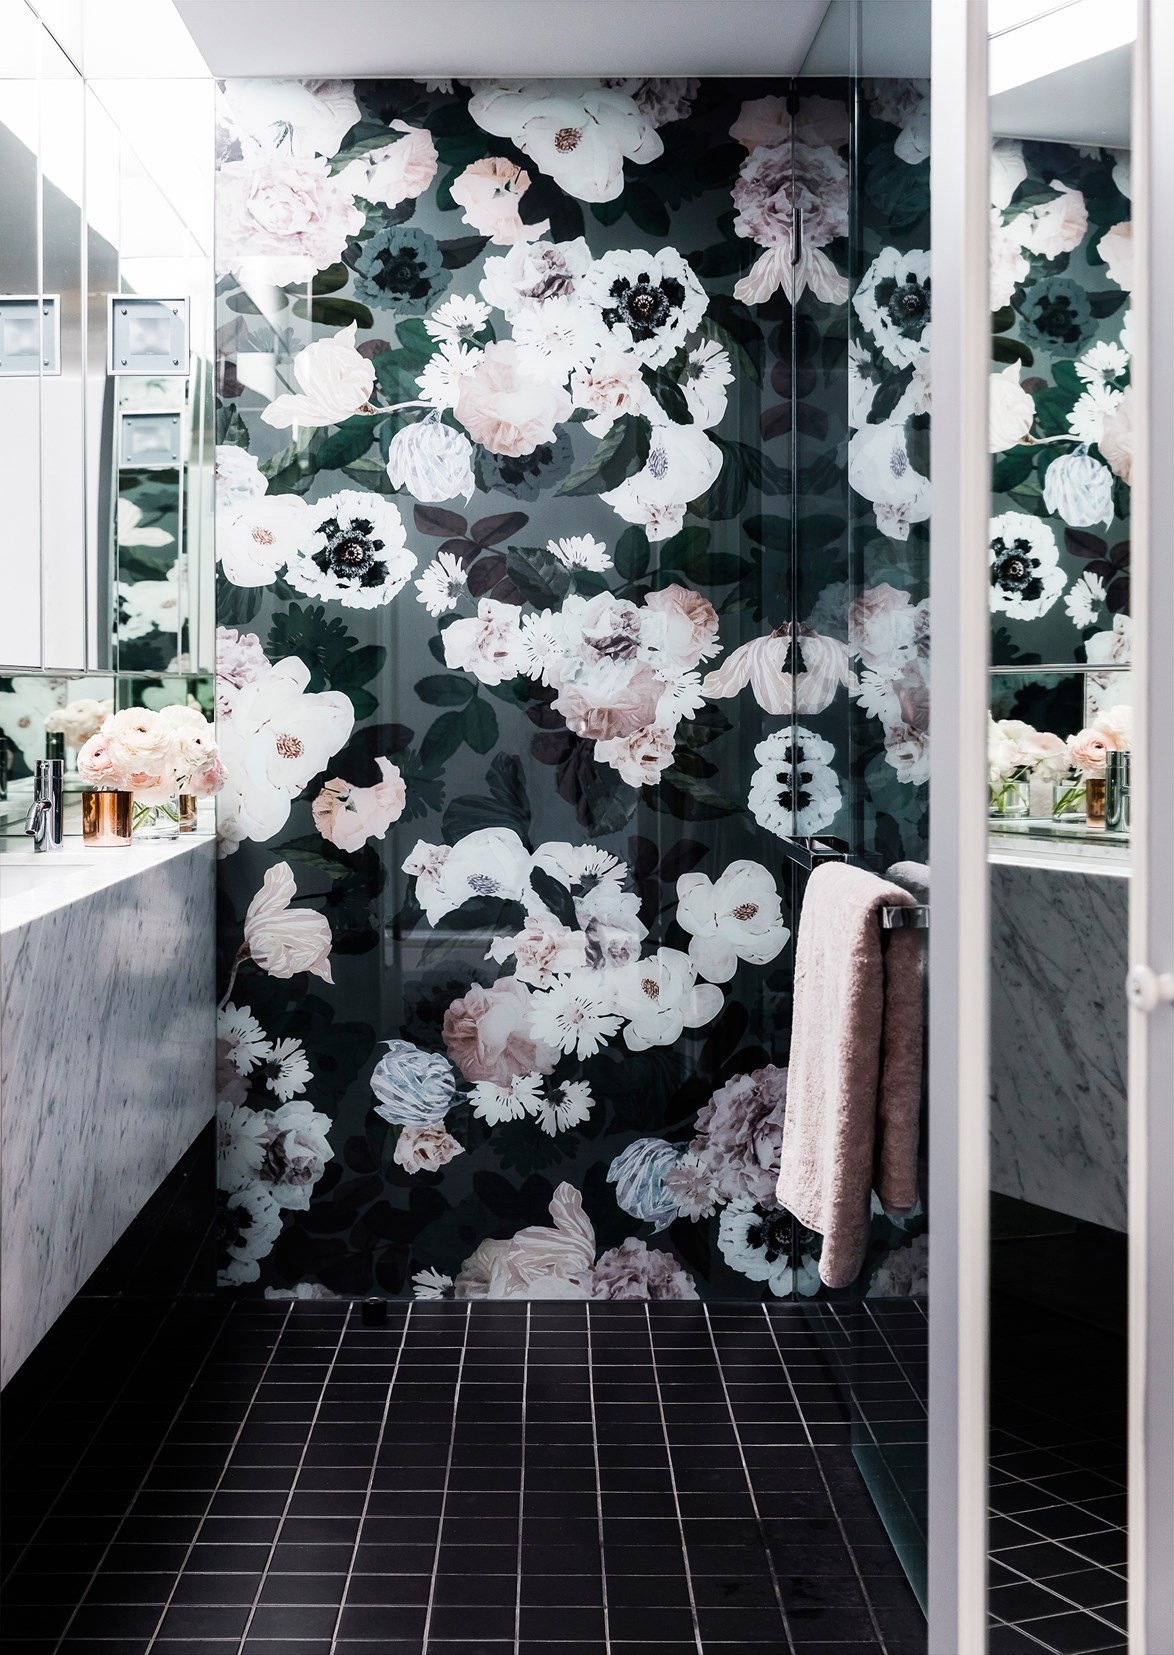 Although not technically wallpaper, this 'wallpaper-inspired' printed glass feature in a [Sydney florist's home](http://www.homestolove.com.au/the-renovated-sydney-home-of-florist-sean-cook-4711) is an excellent innovation, creating a functional, water-proof focal-point fit for a luxurious bathroom. *Photo: Maree Homer / Australian House & Garden*